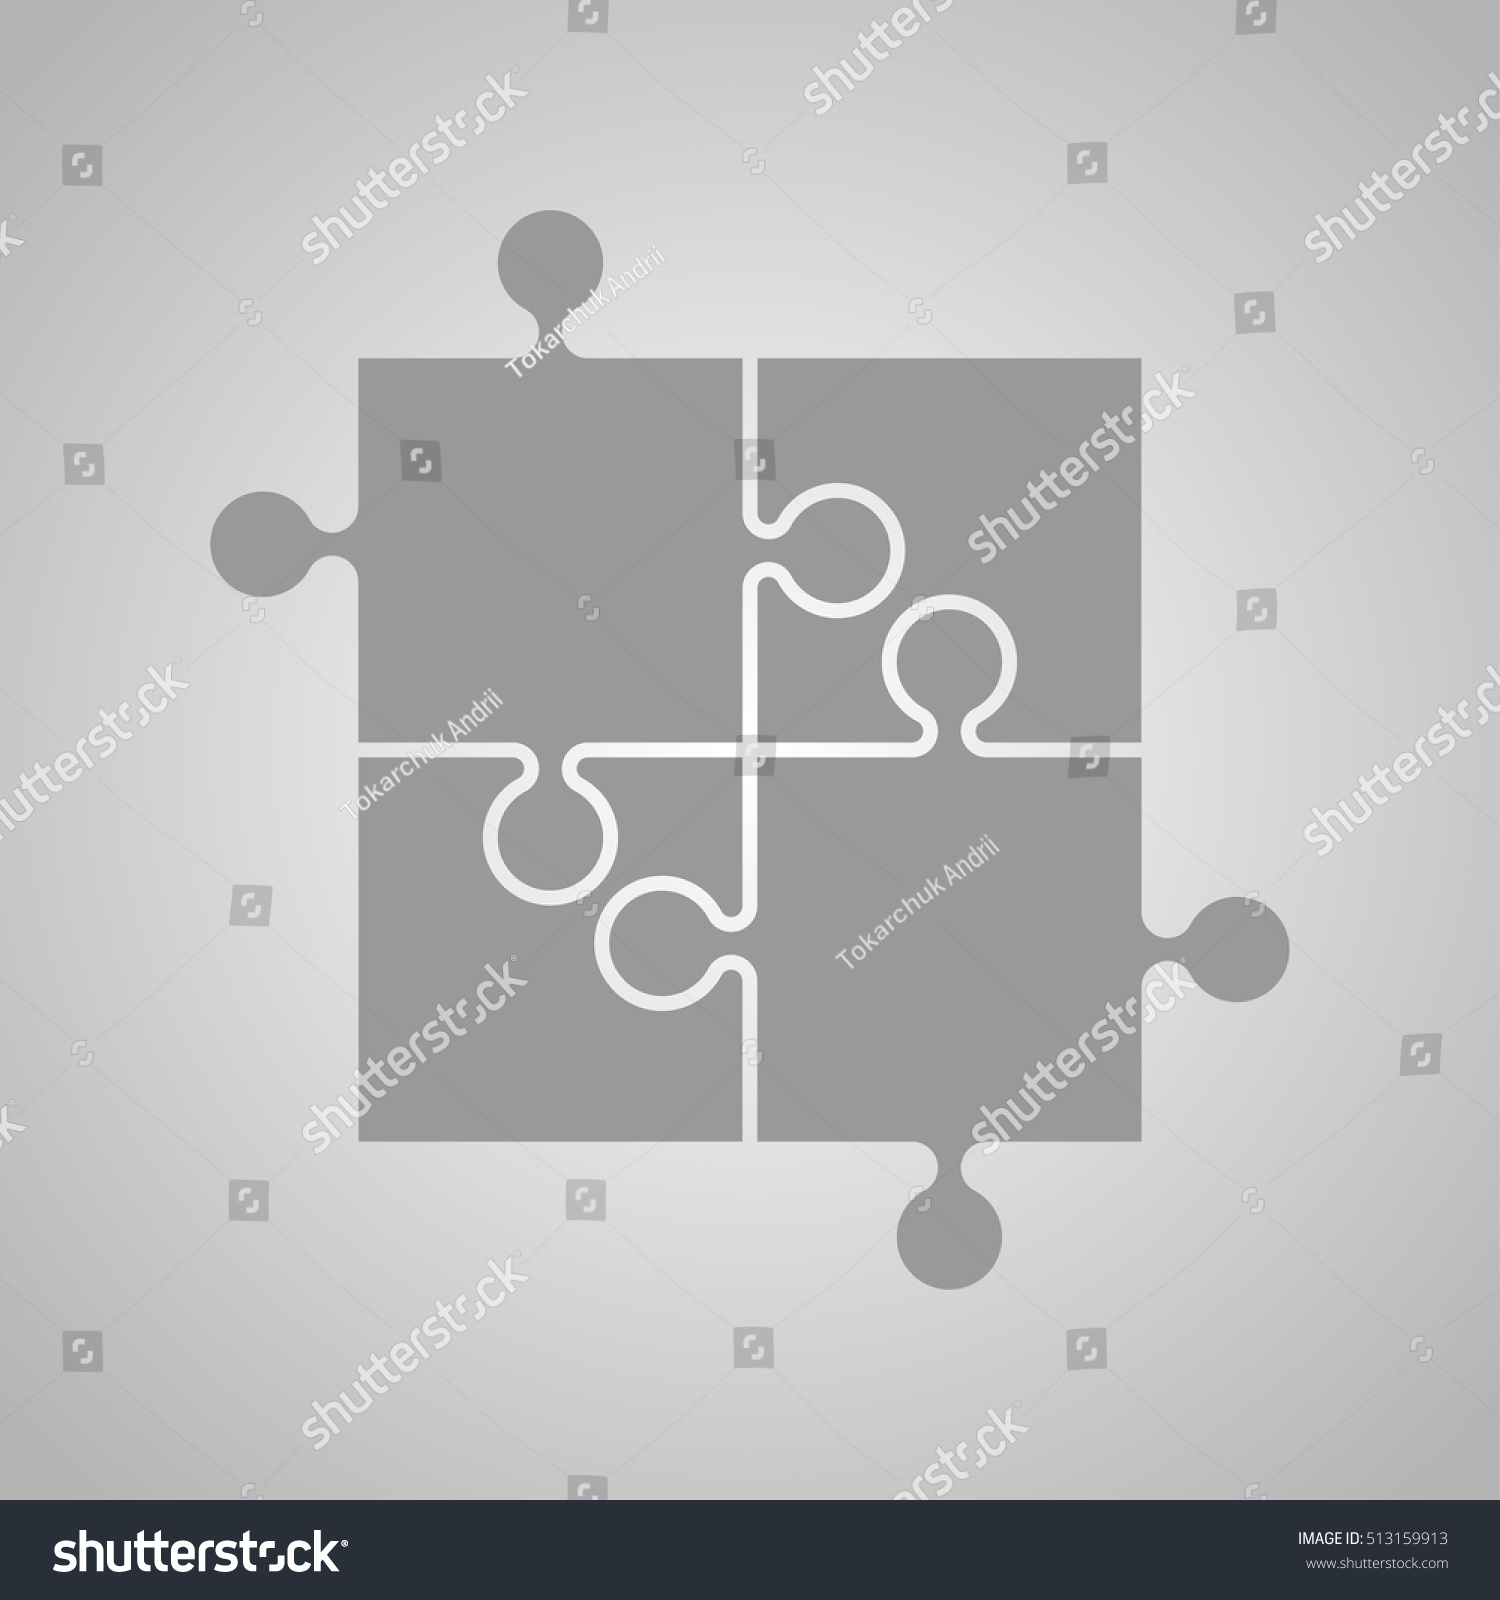 Four Grey Piece Flat Puzzle Round Stock Vector 513159913 - Shutterstock